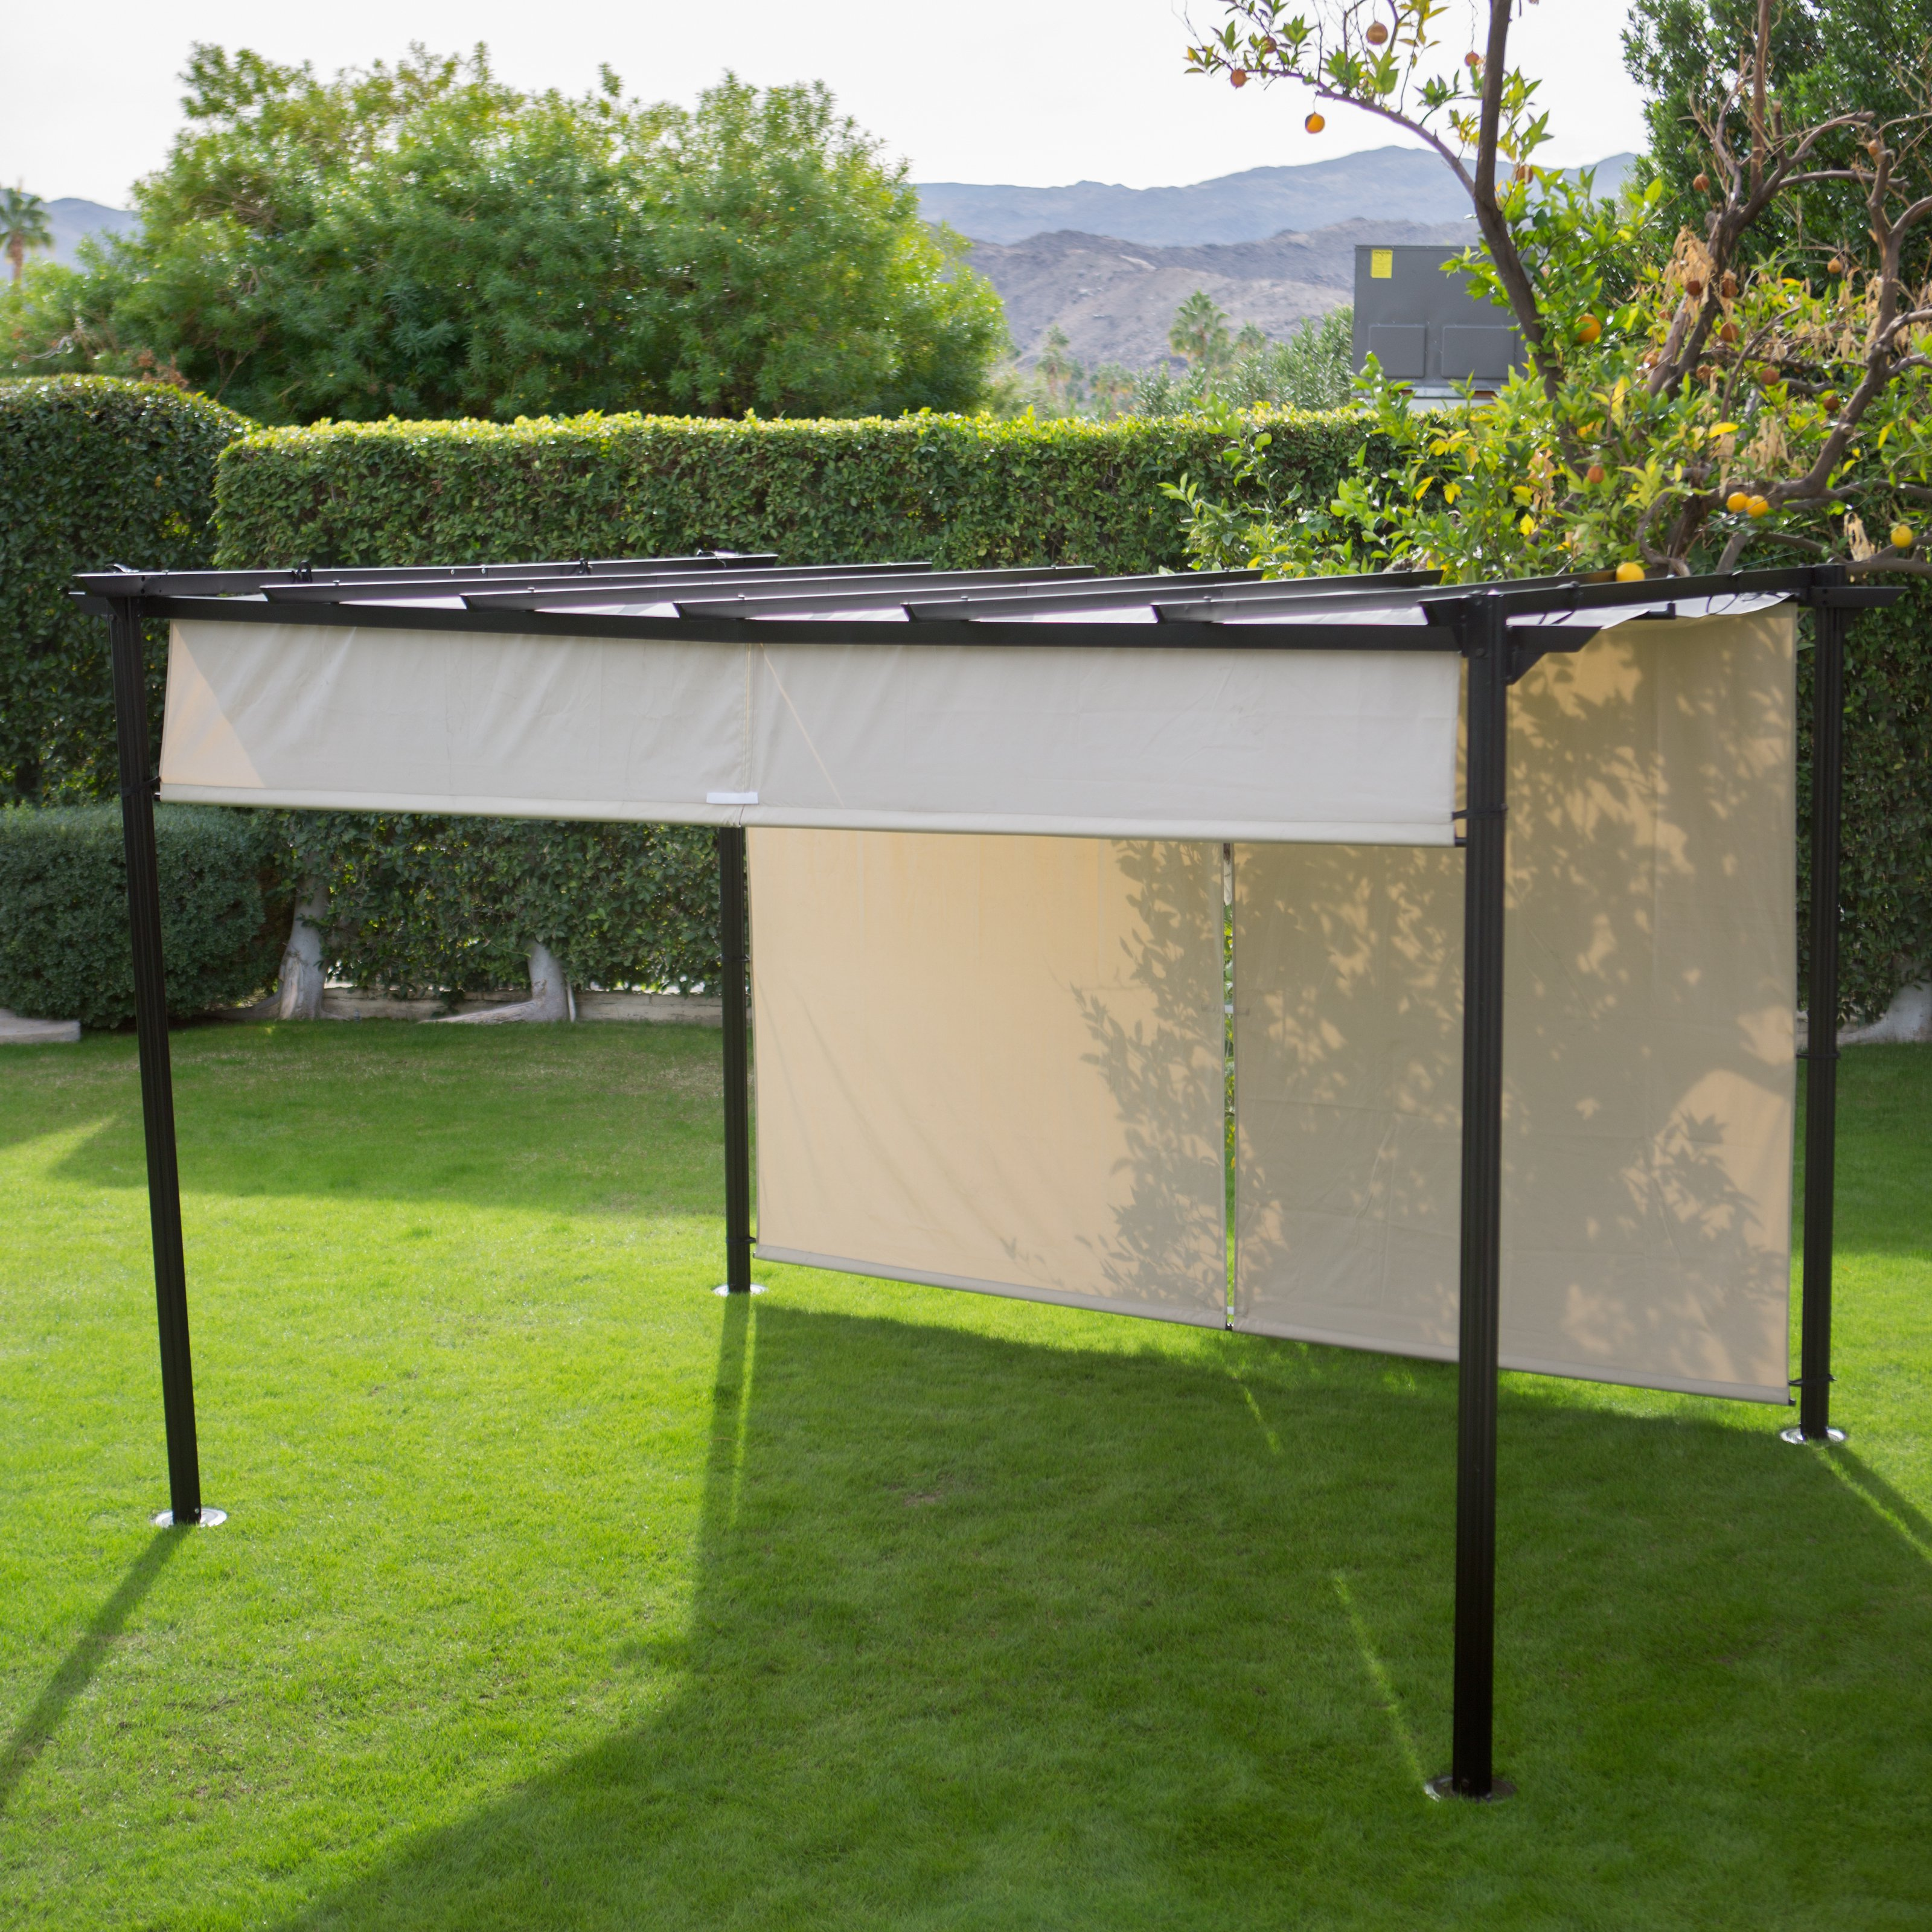 outdoor canopy belham living steel outdoor pergola gazebo with retractable canopy shades | IRNEOQP